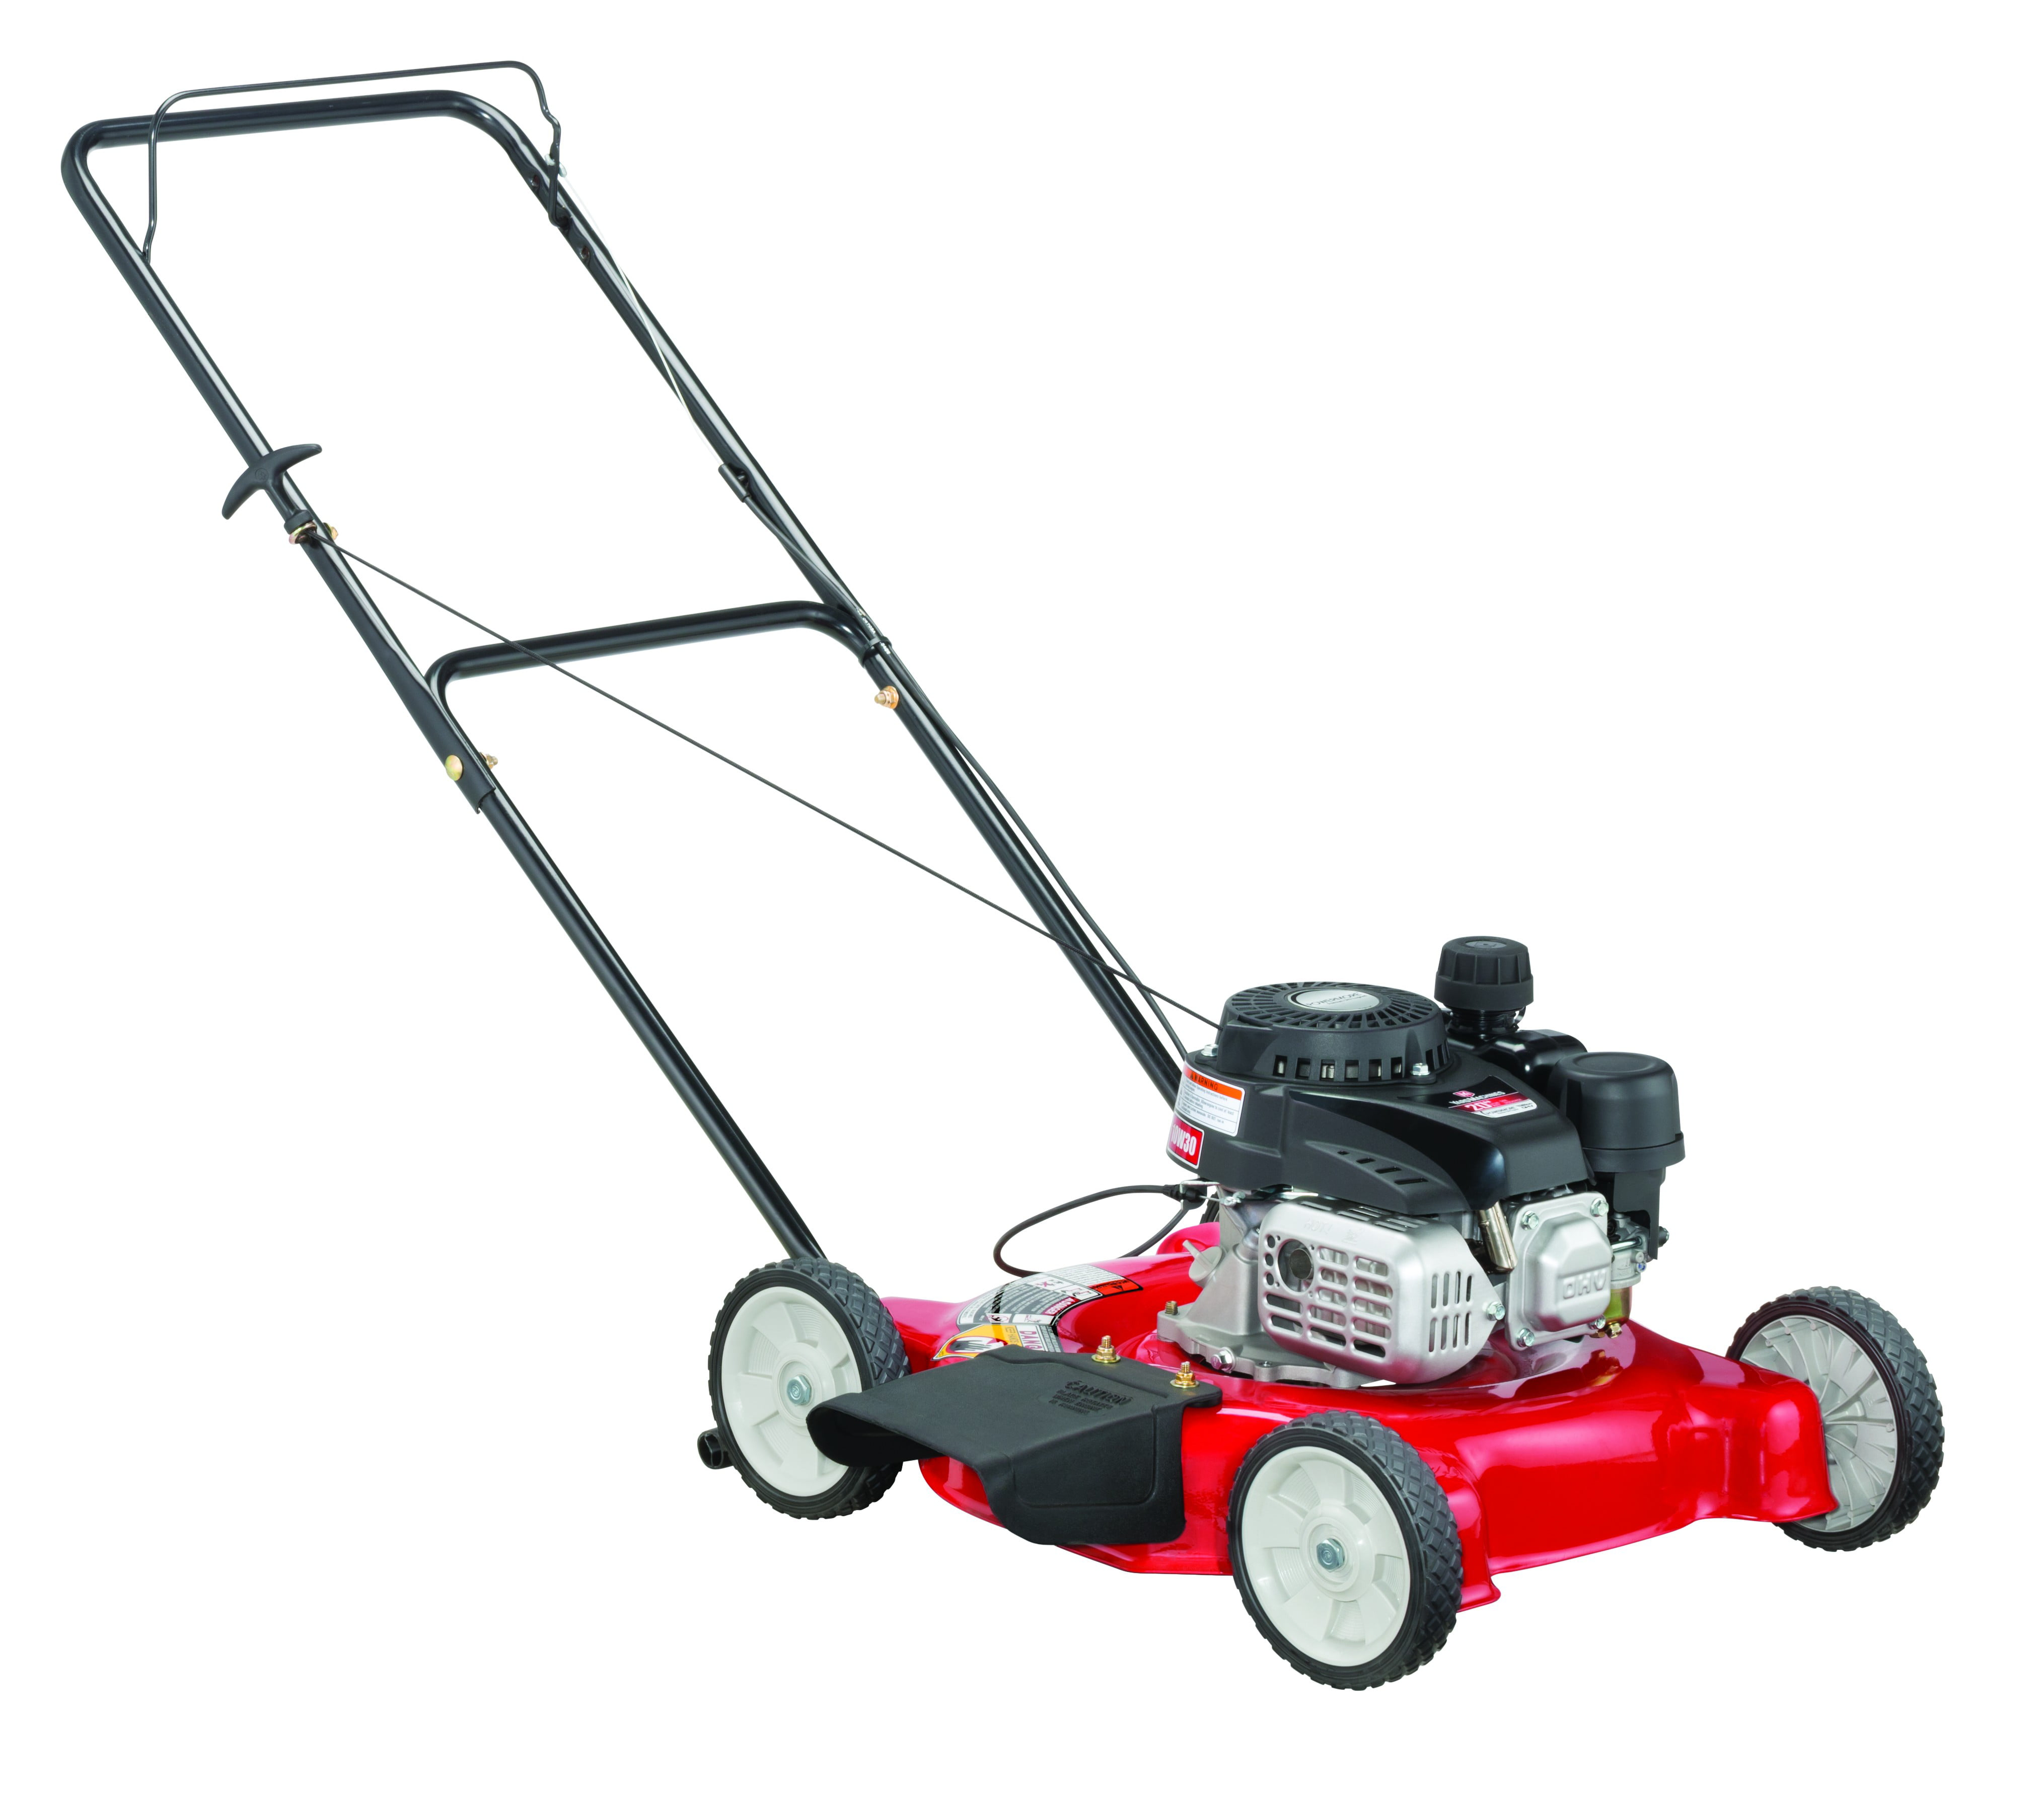 "Yard Machines 20"" Gas Push Lawn Mower with Side Discharge by MTD Products"